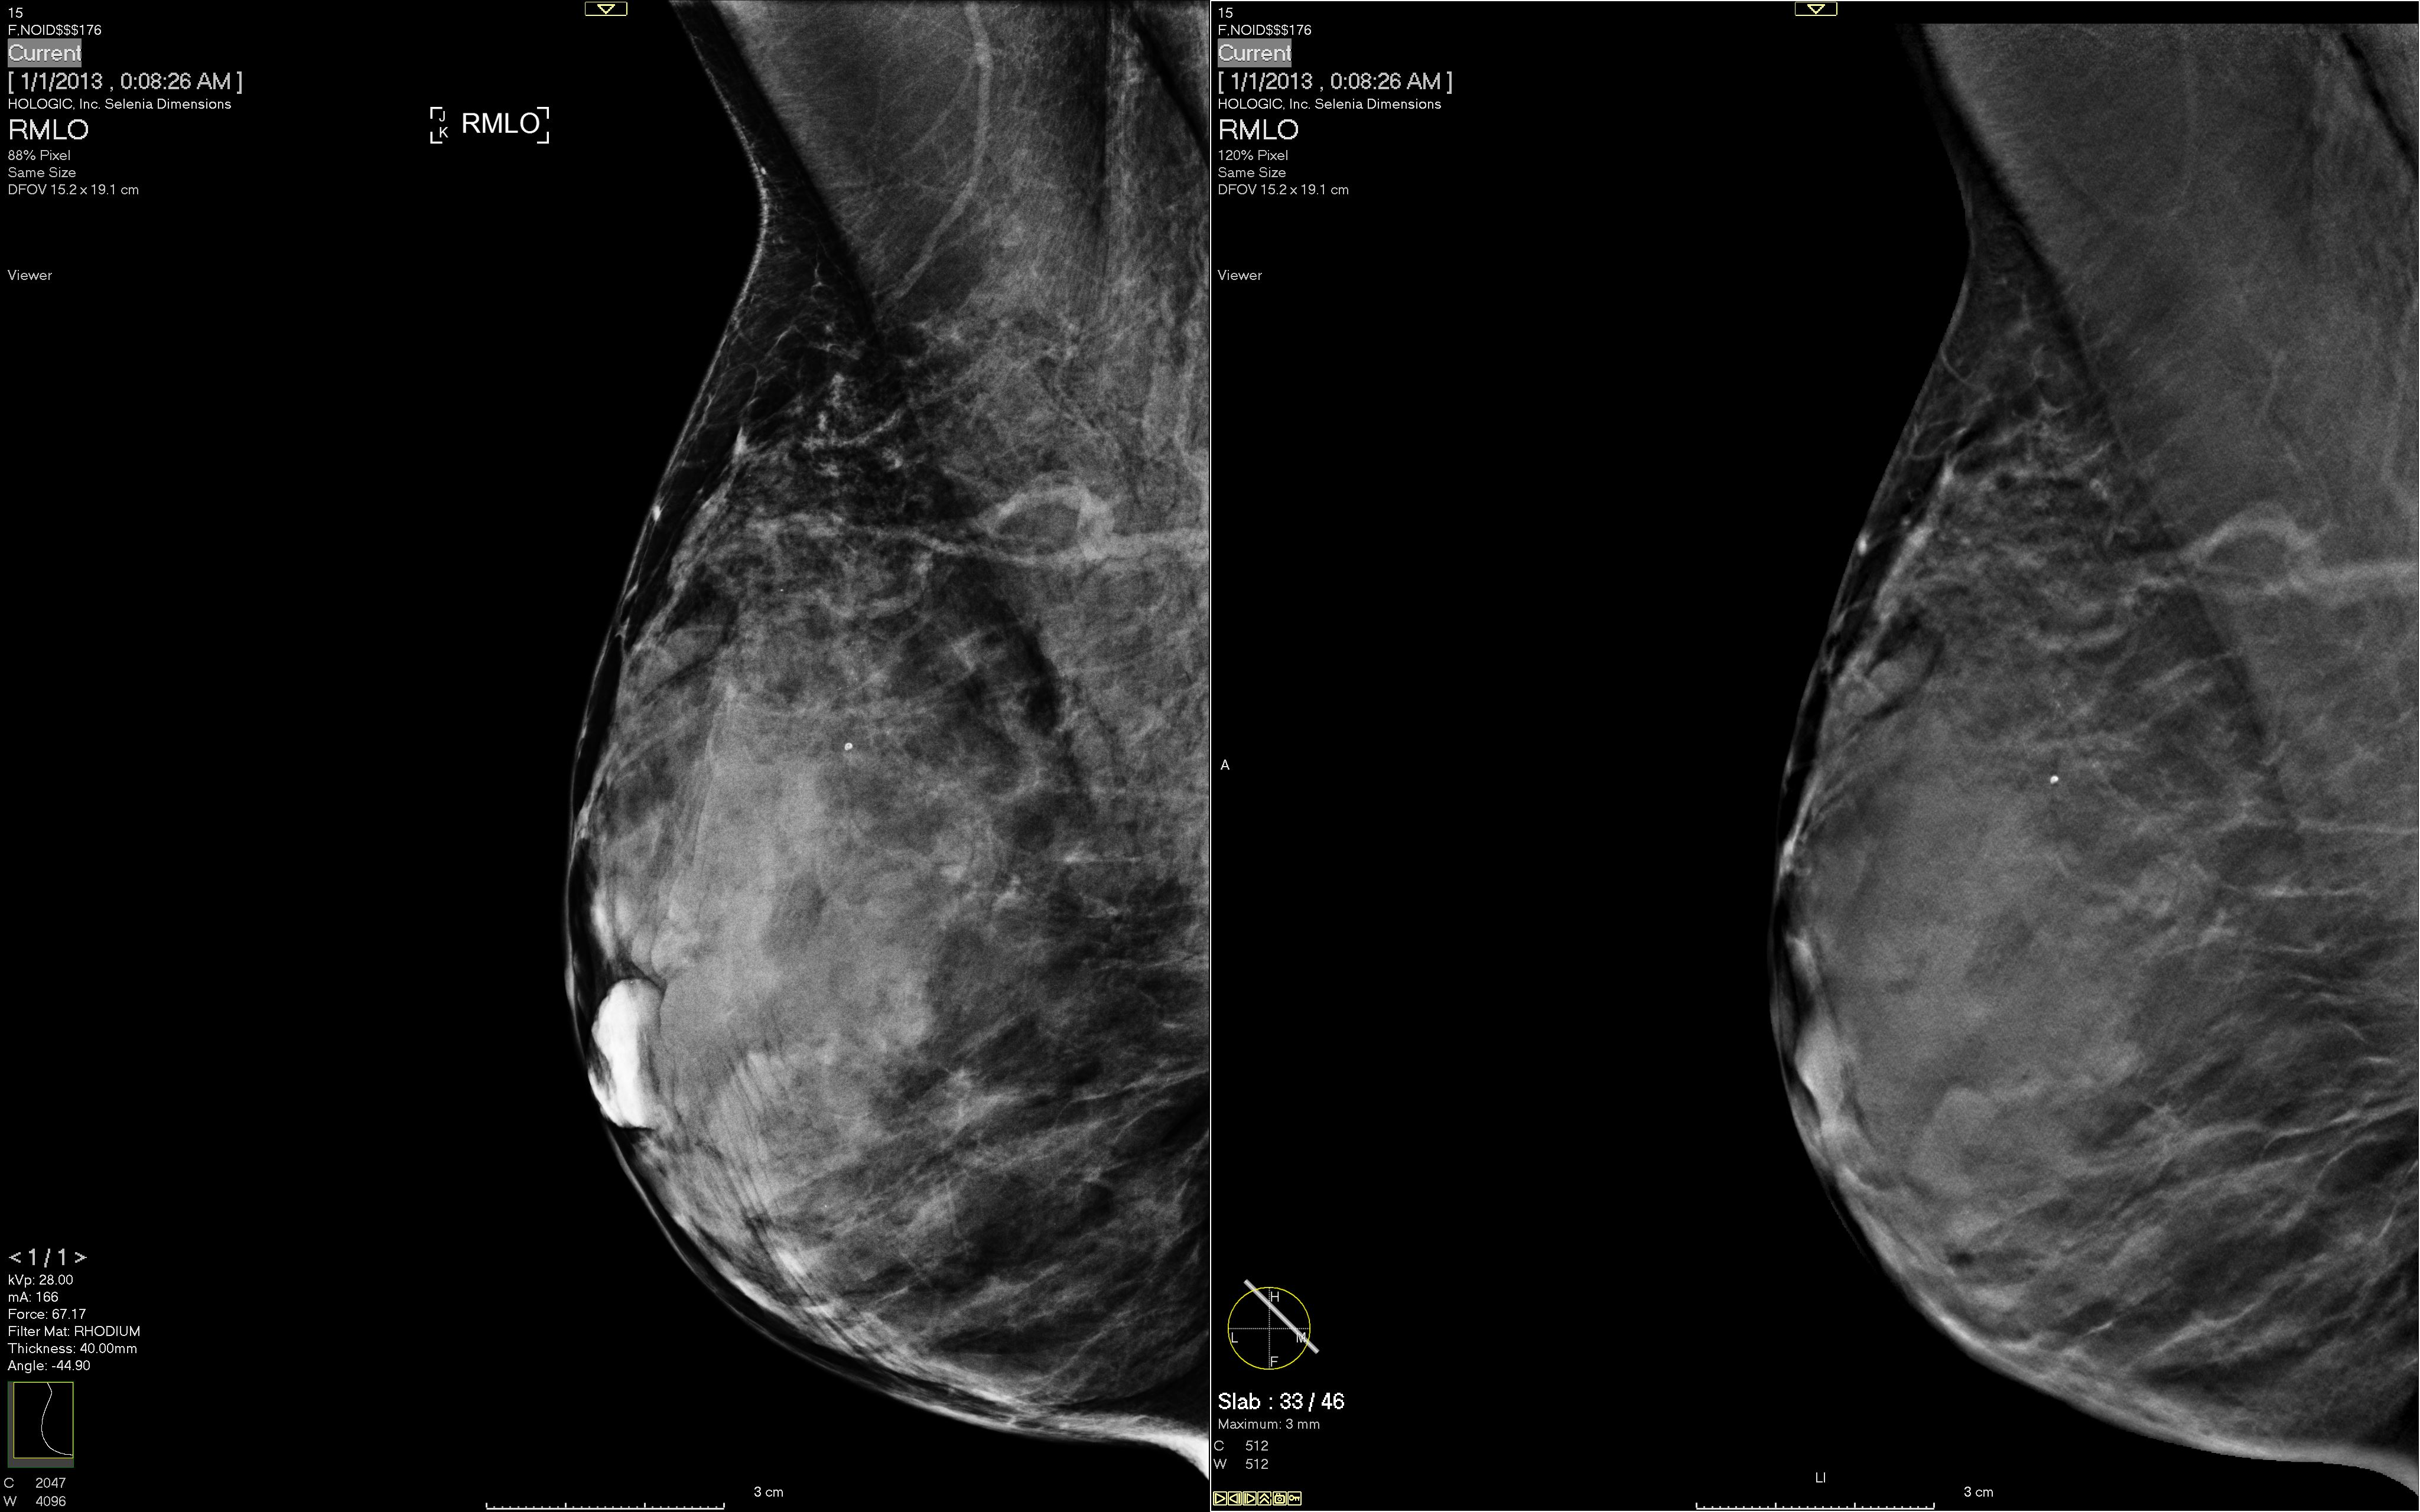 breast tomosynthesis courses 2014 Large multicenter studies demonstrate that digital breast tomosynthesis reduces call back and increases breast cancer detection the mqsa and fda require documented training in digital breast tomosynthesis prior to independent use in clinical practice.